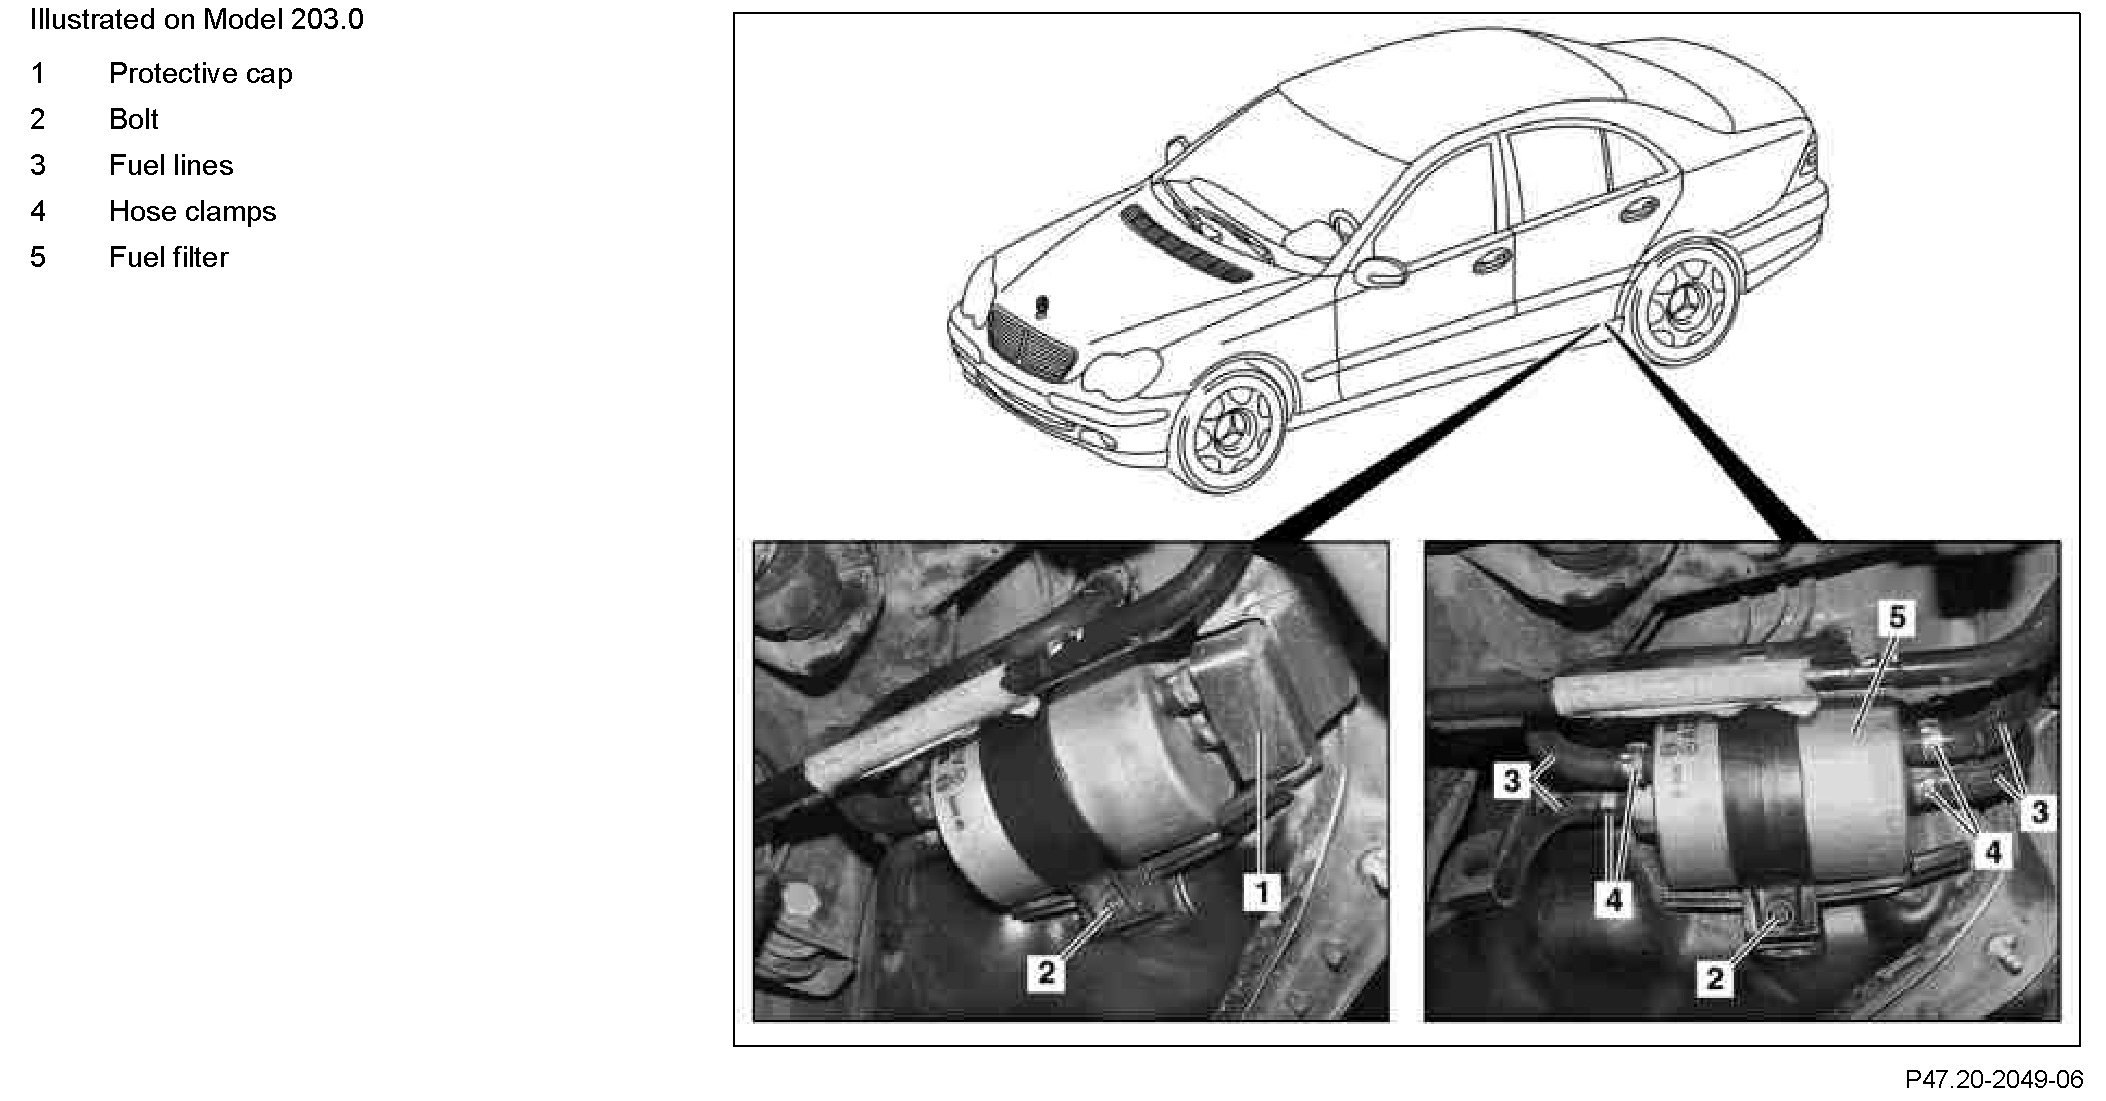 Mercedes Benz C280 Fuel Filter Location Wiring Diagram Libraries 2010 How Do I Change The Spark Plugs And In A 2006 Mb C 230replace